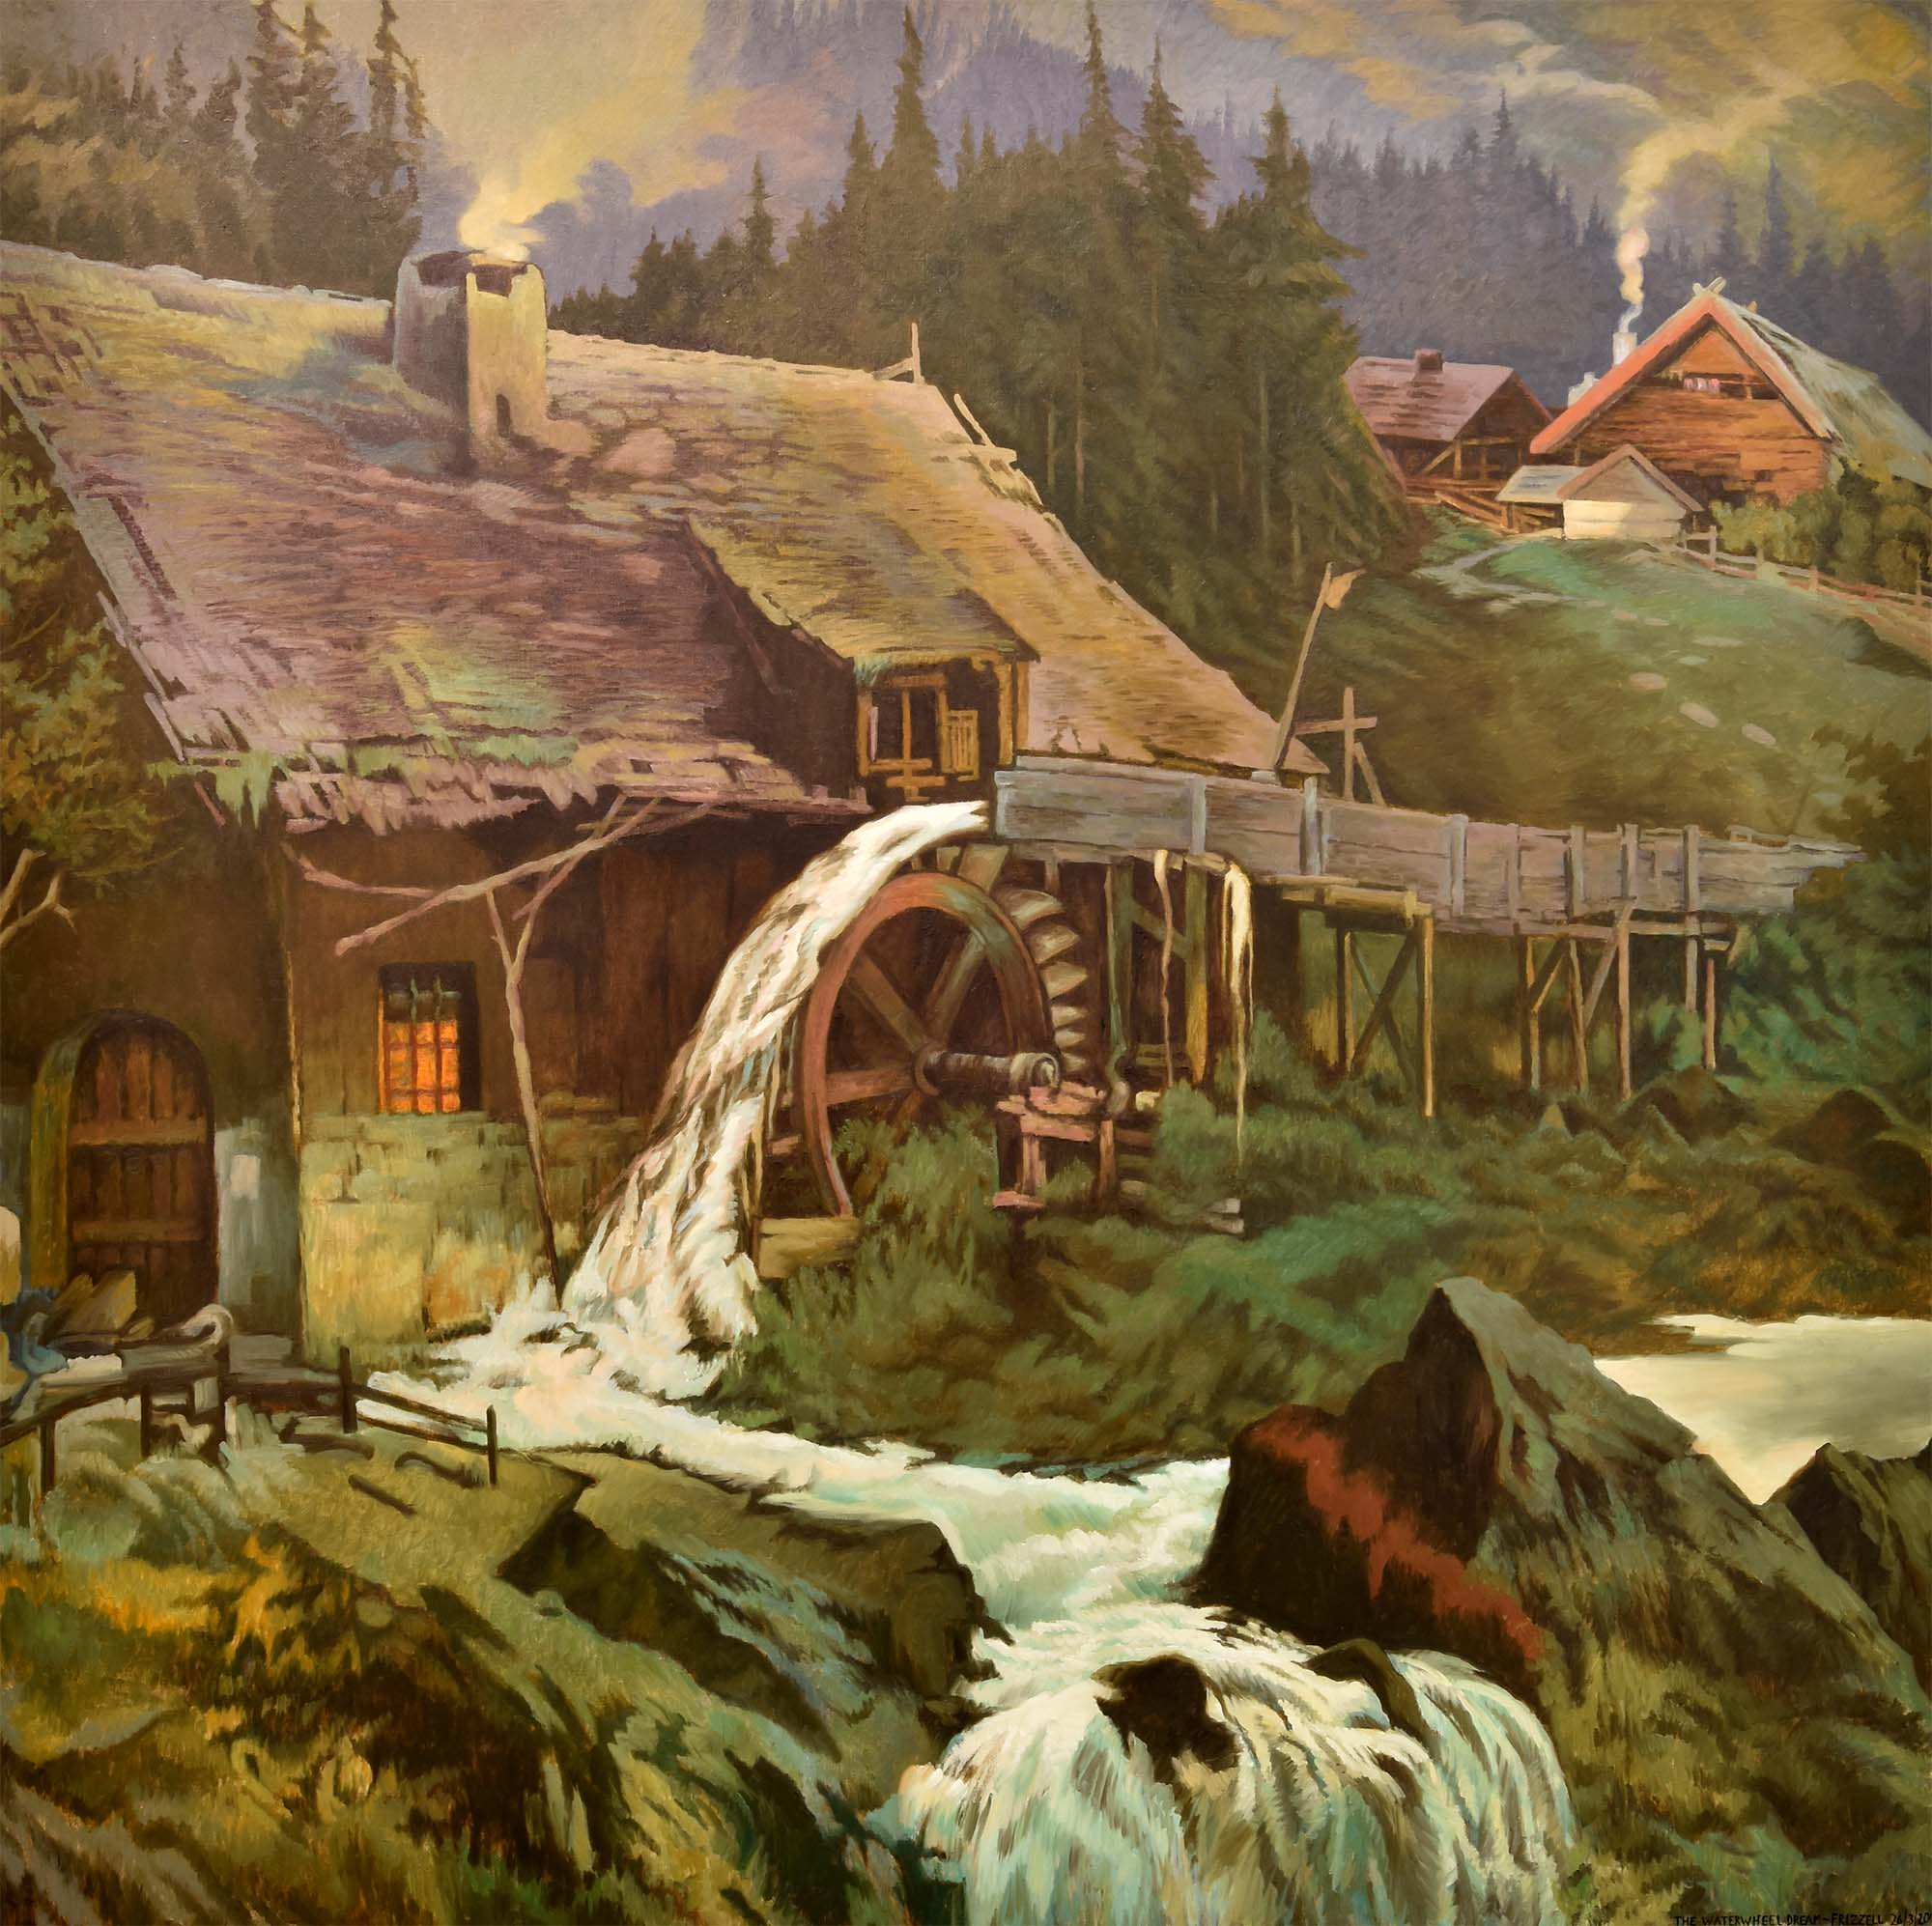 The Waterwheel Dream